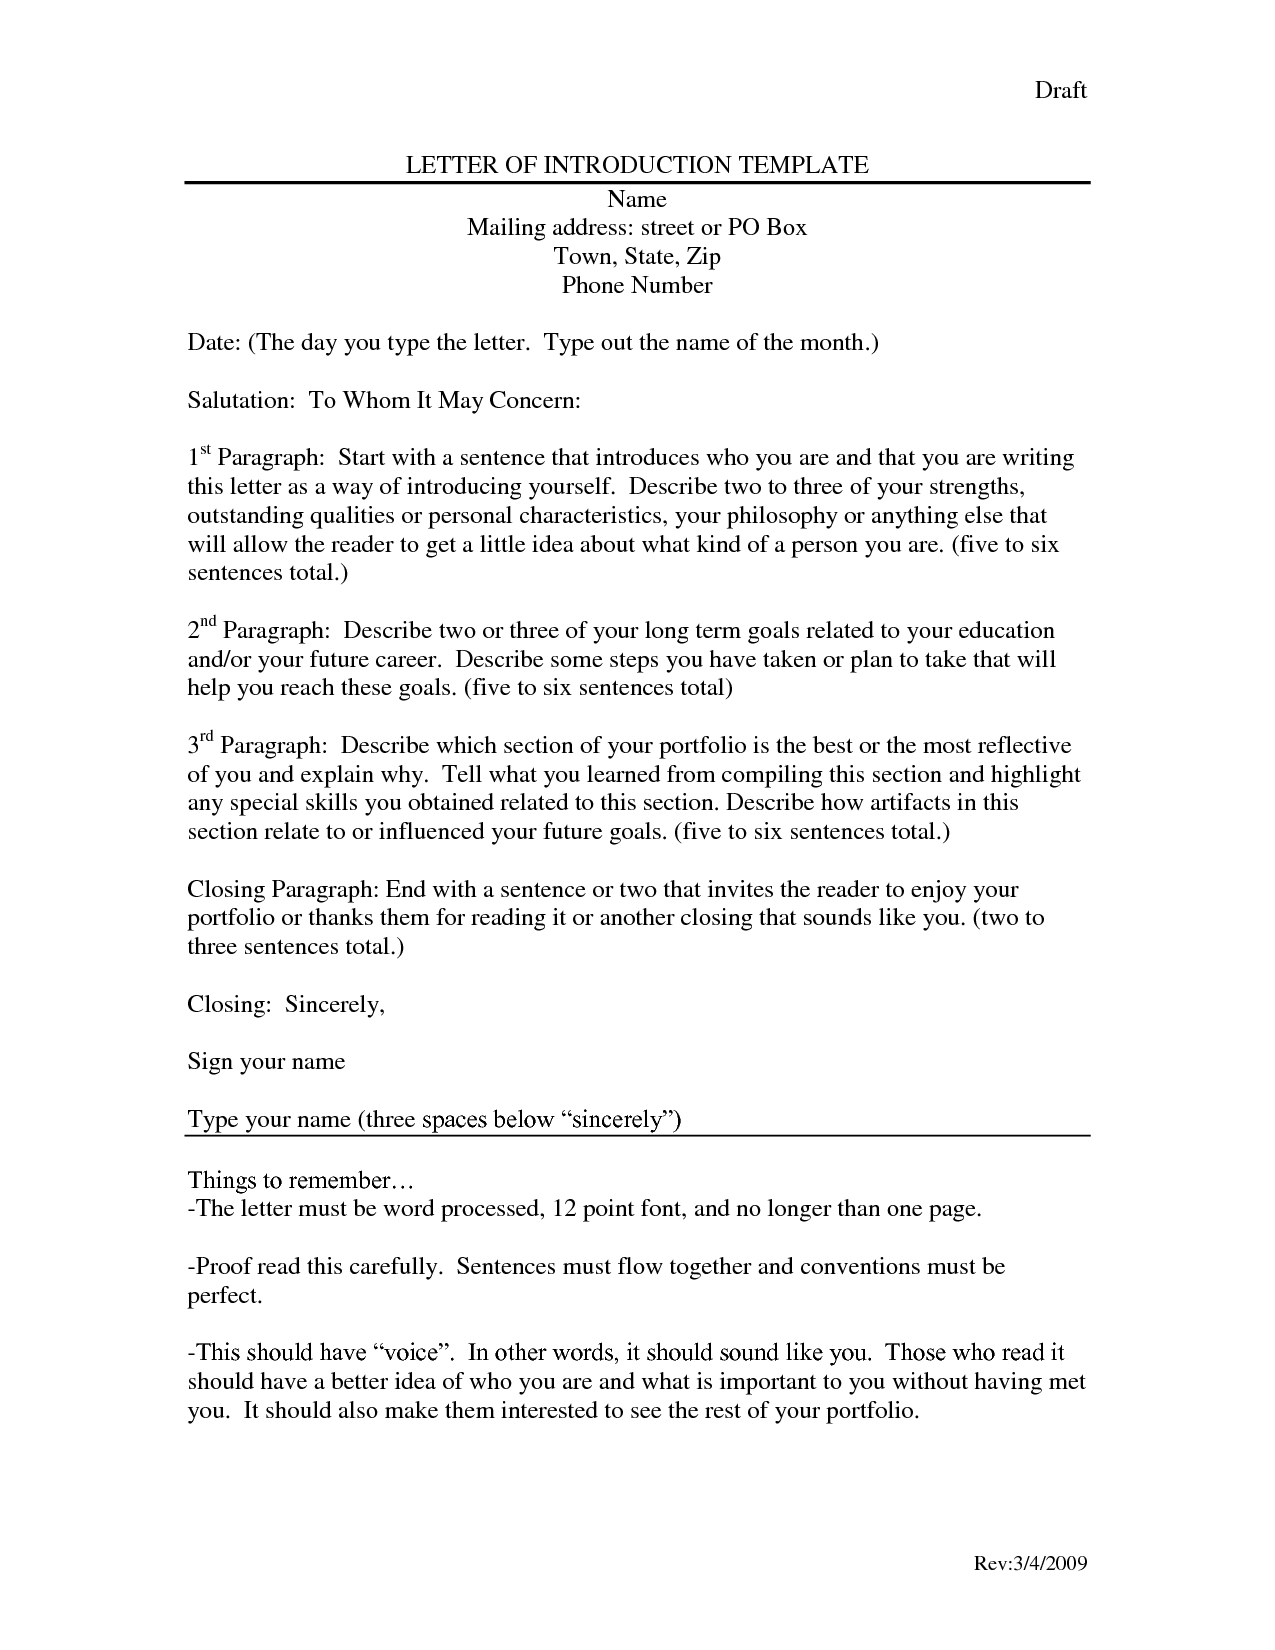 letter of introduction template education letter of introduction template dancingmermaidcom yfzce92i 22468 | 29e609ba97746f9202e60e0e78c04841